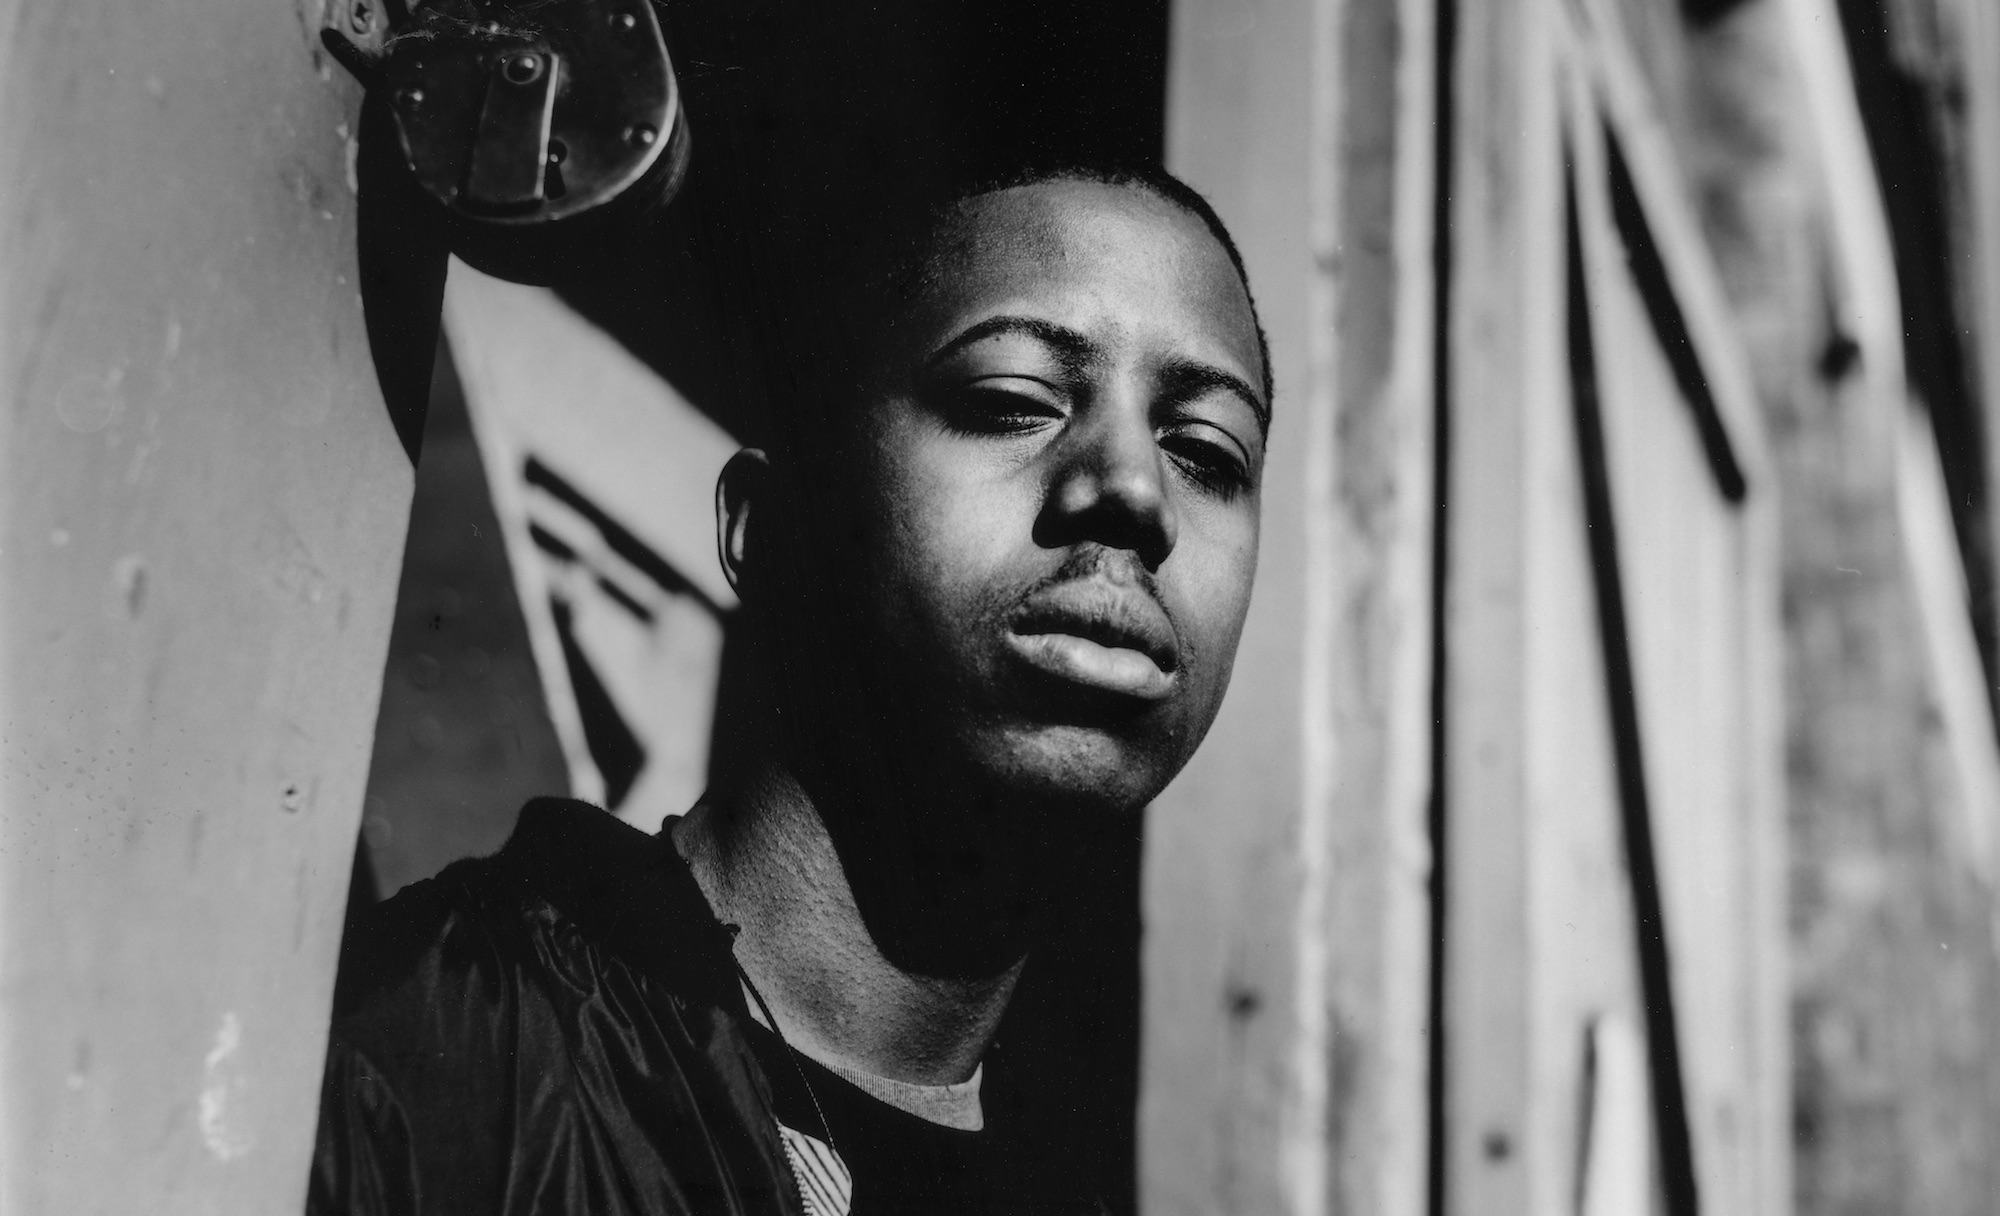 Scientists with soul: Moses Boyd on the drummers that shape his sound